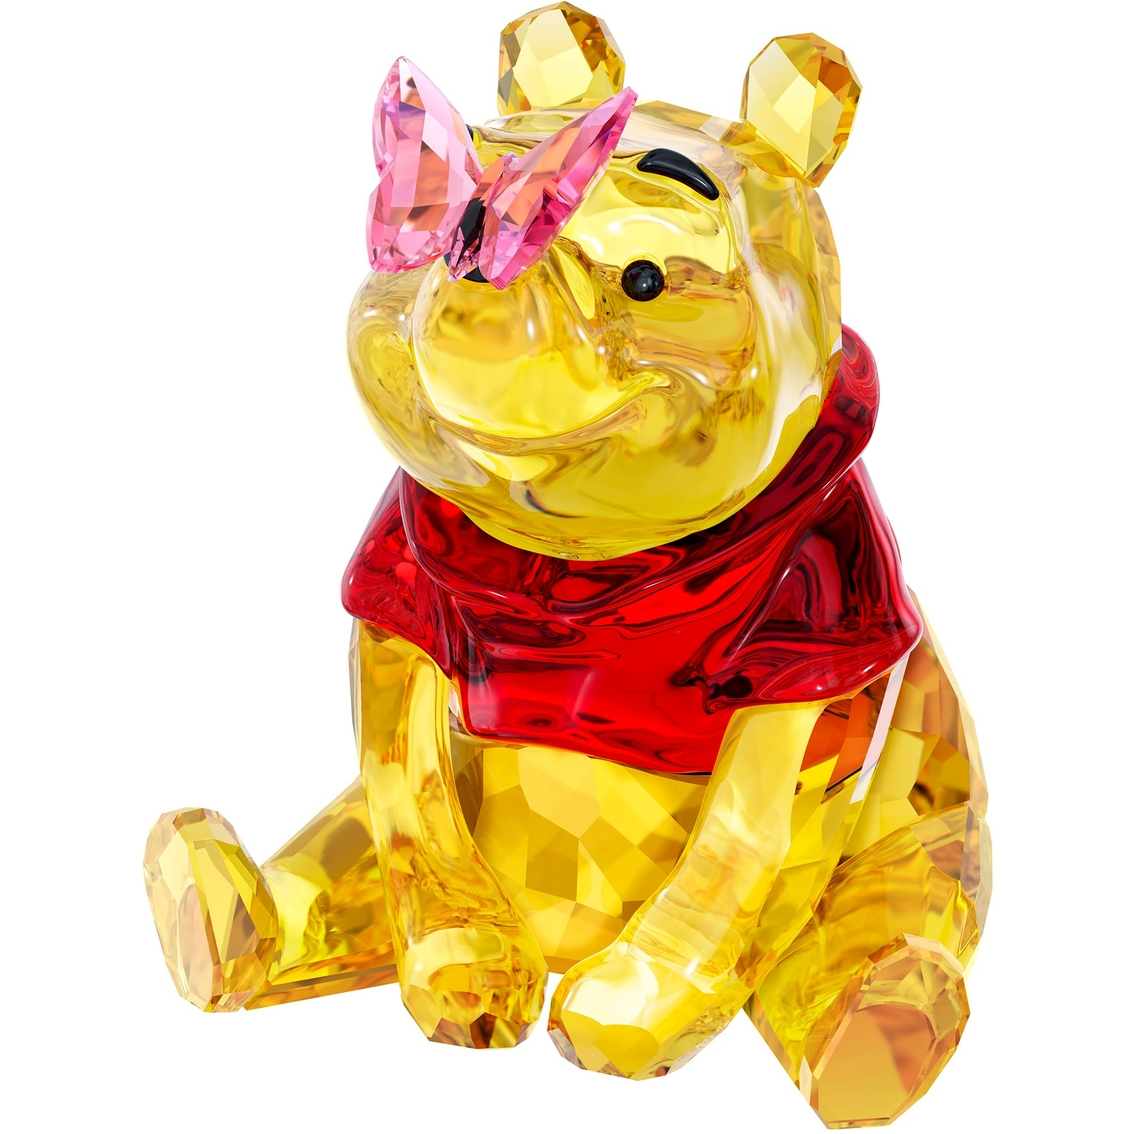 710a895856 Swarovski Winnie The Pooh With Butterfly   Collectible Figurines ...